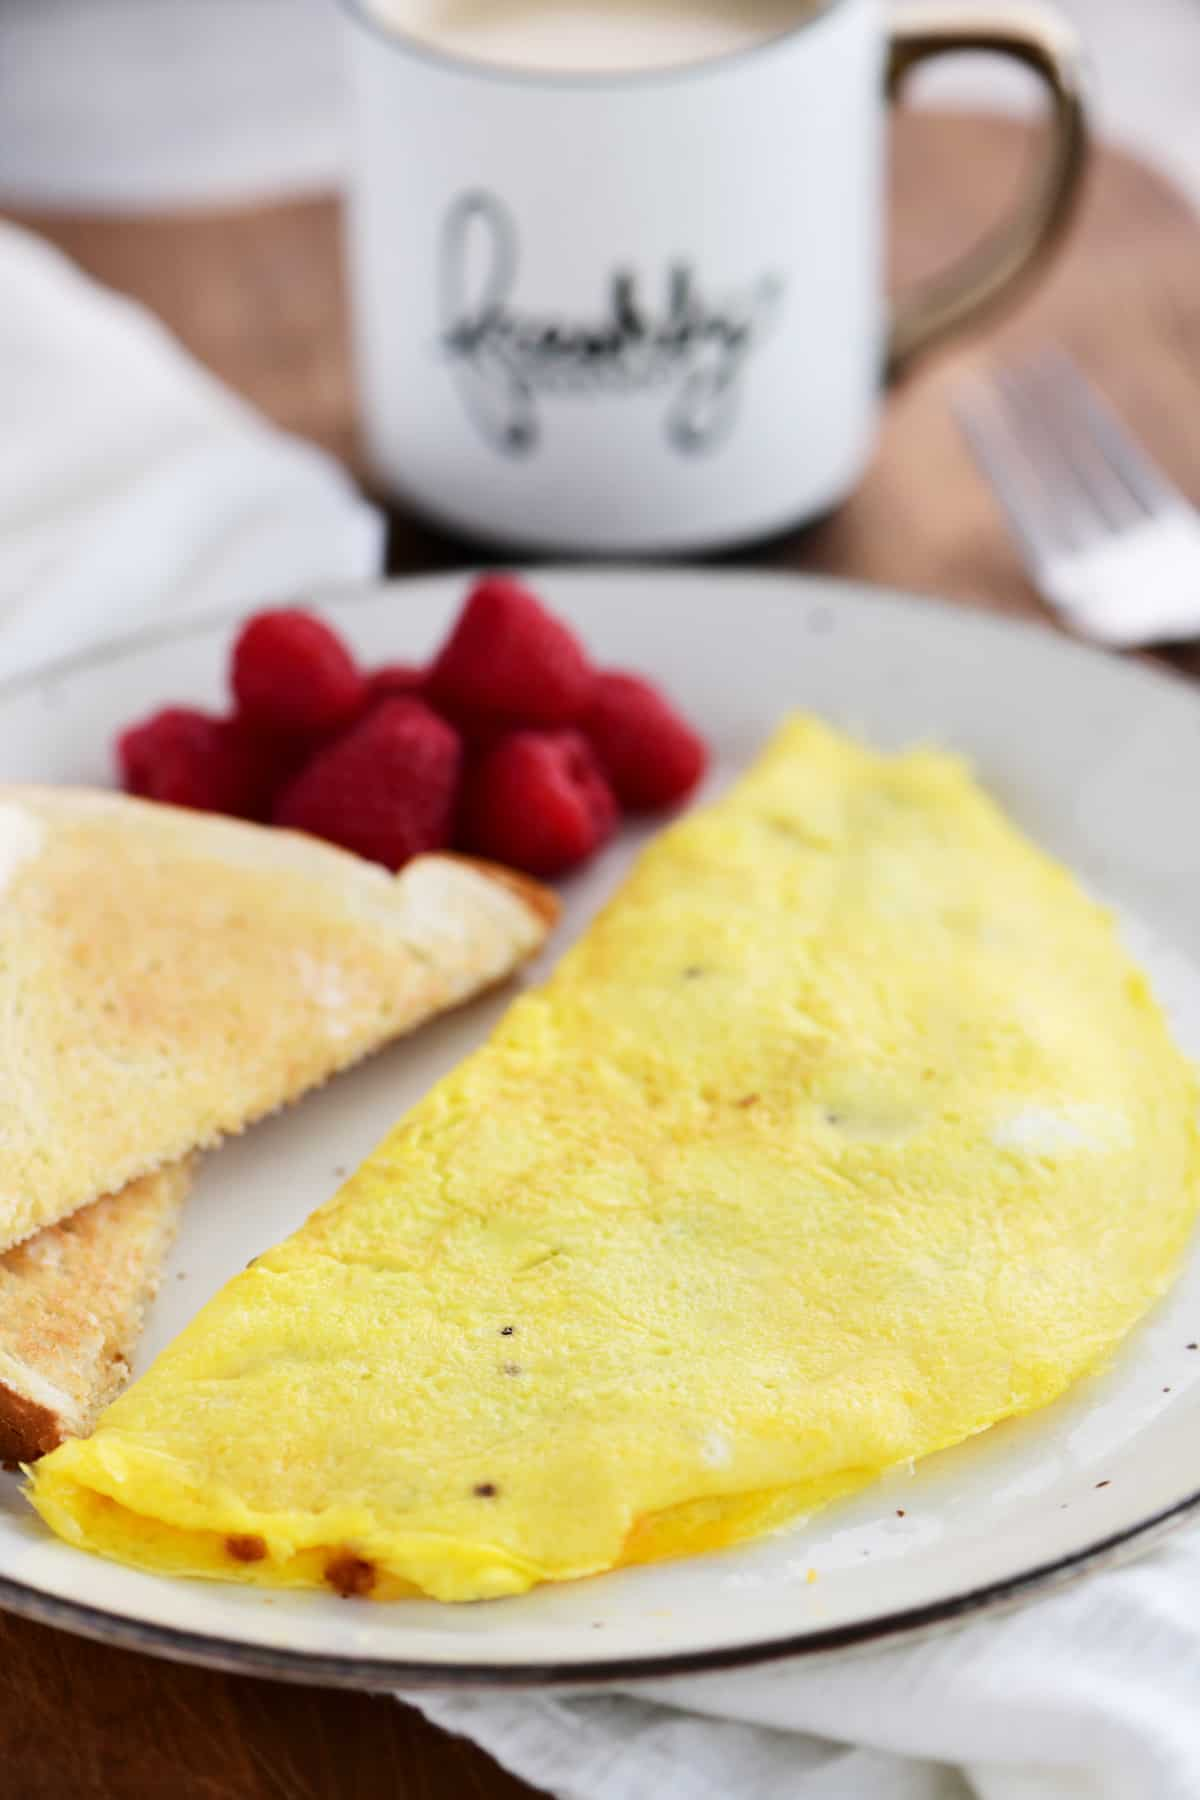 an omelet, toast and raspberries on a plate